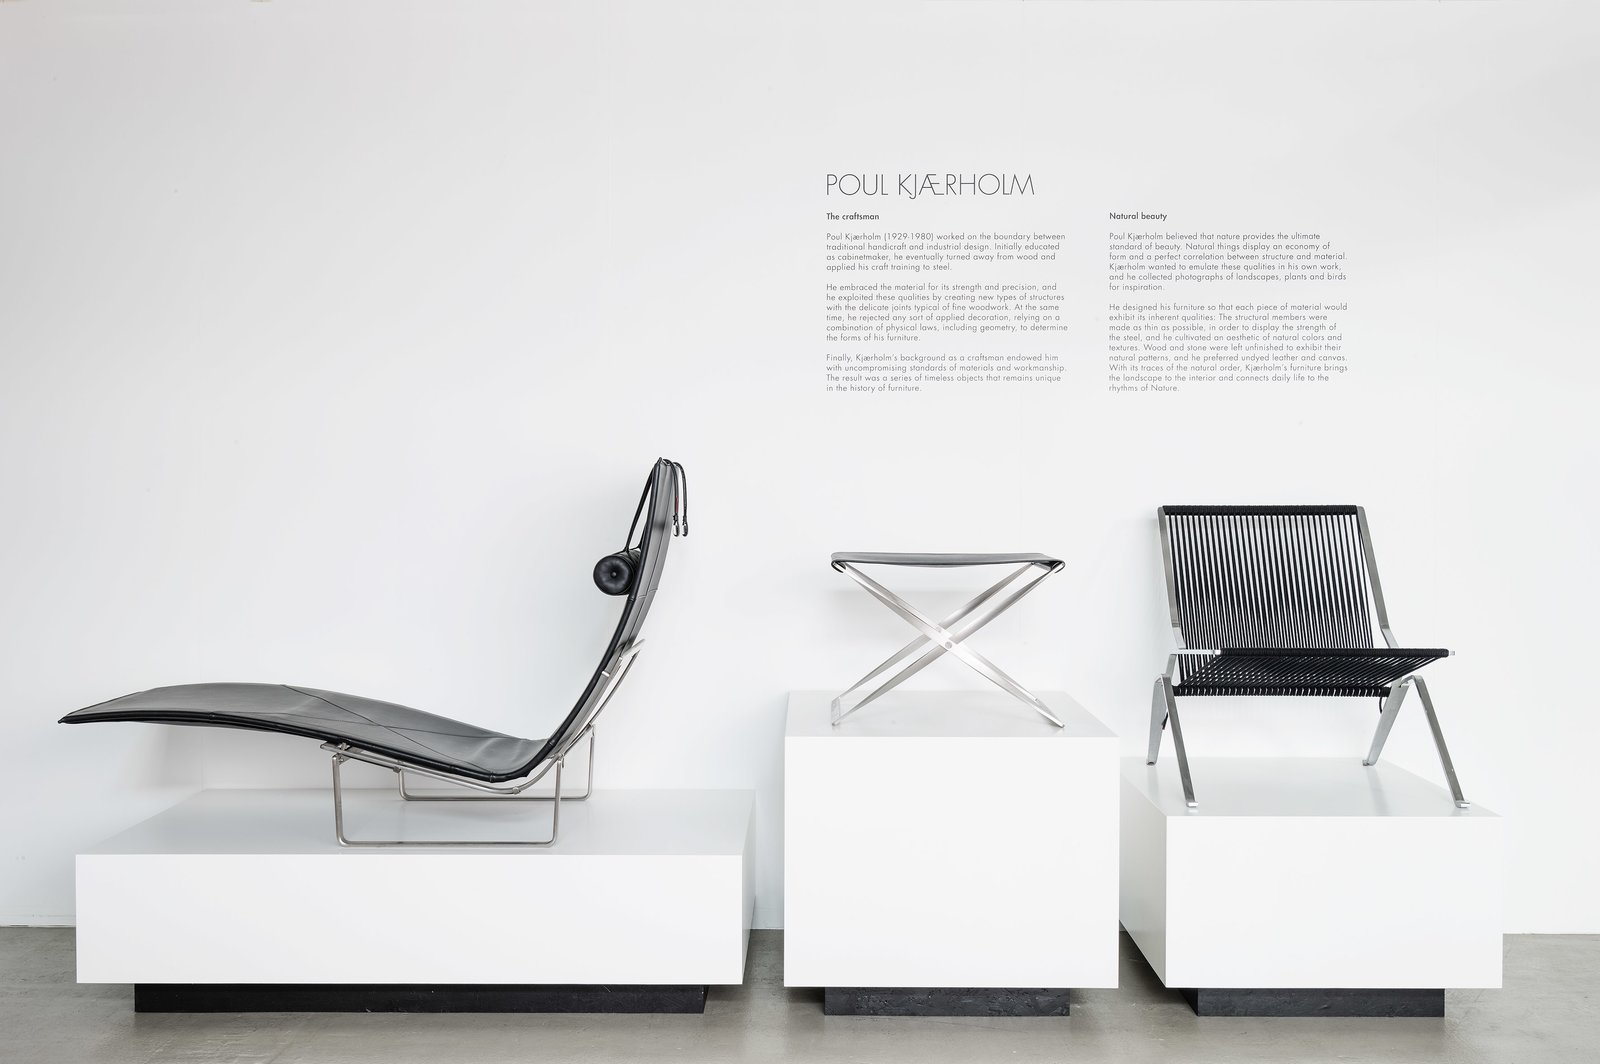 Exhibited between the PK24 and the PK25, the PK91 is Kjærholm's homage to the Danish designer Kaare Klint. As an influential professor at the Royal Academy of Fine Arts, Klint produced a number of important designs, most notably the Safari Chair in 1933. A stool by the professor made from the same material, canvas and wood, is said to have inspired Kjærholm to make his own folding stool in his preferred industrial materials. 10 Things You Didn't Know About Poul Kjærholm - Photo 10 of 11